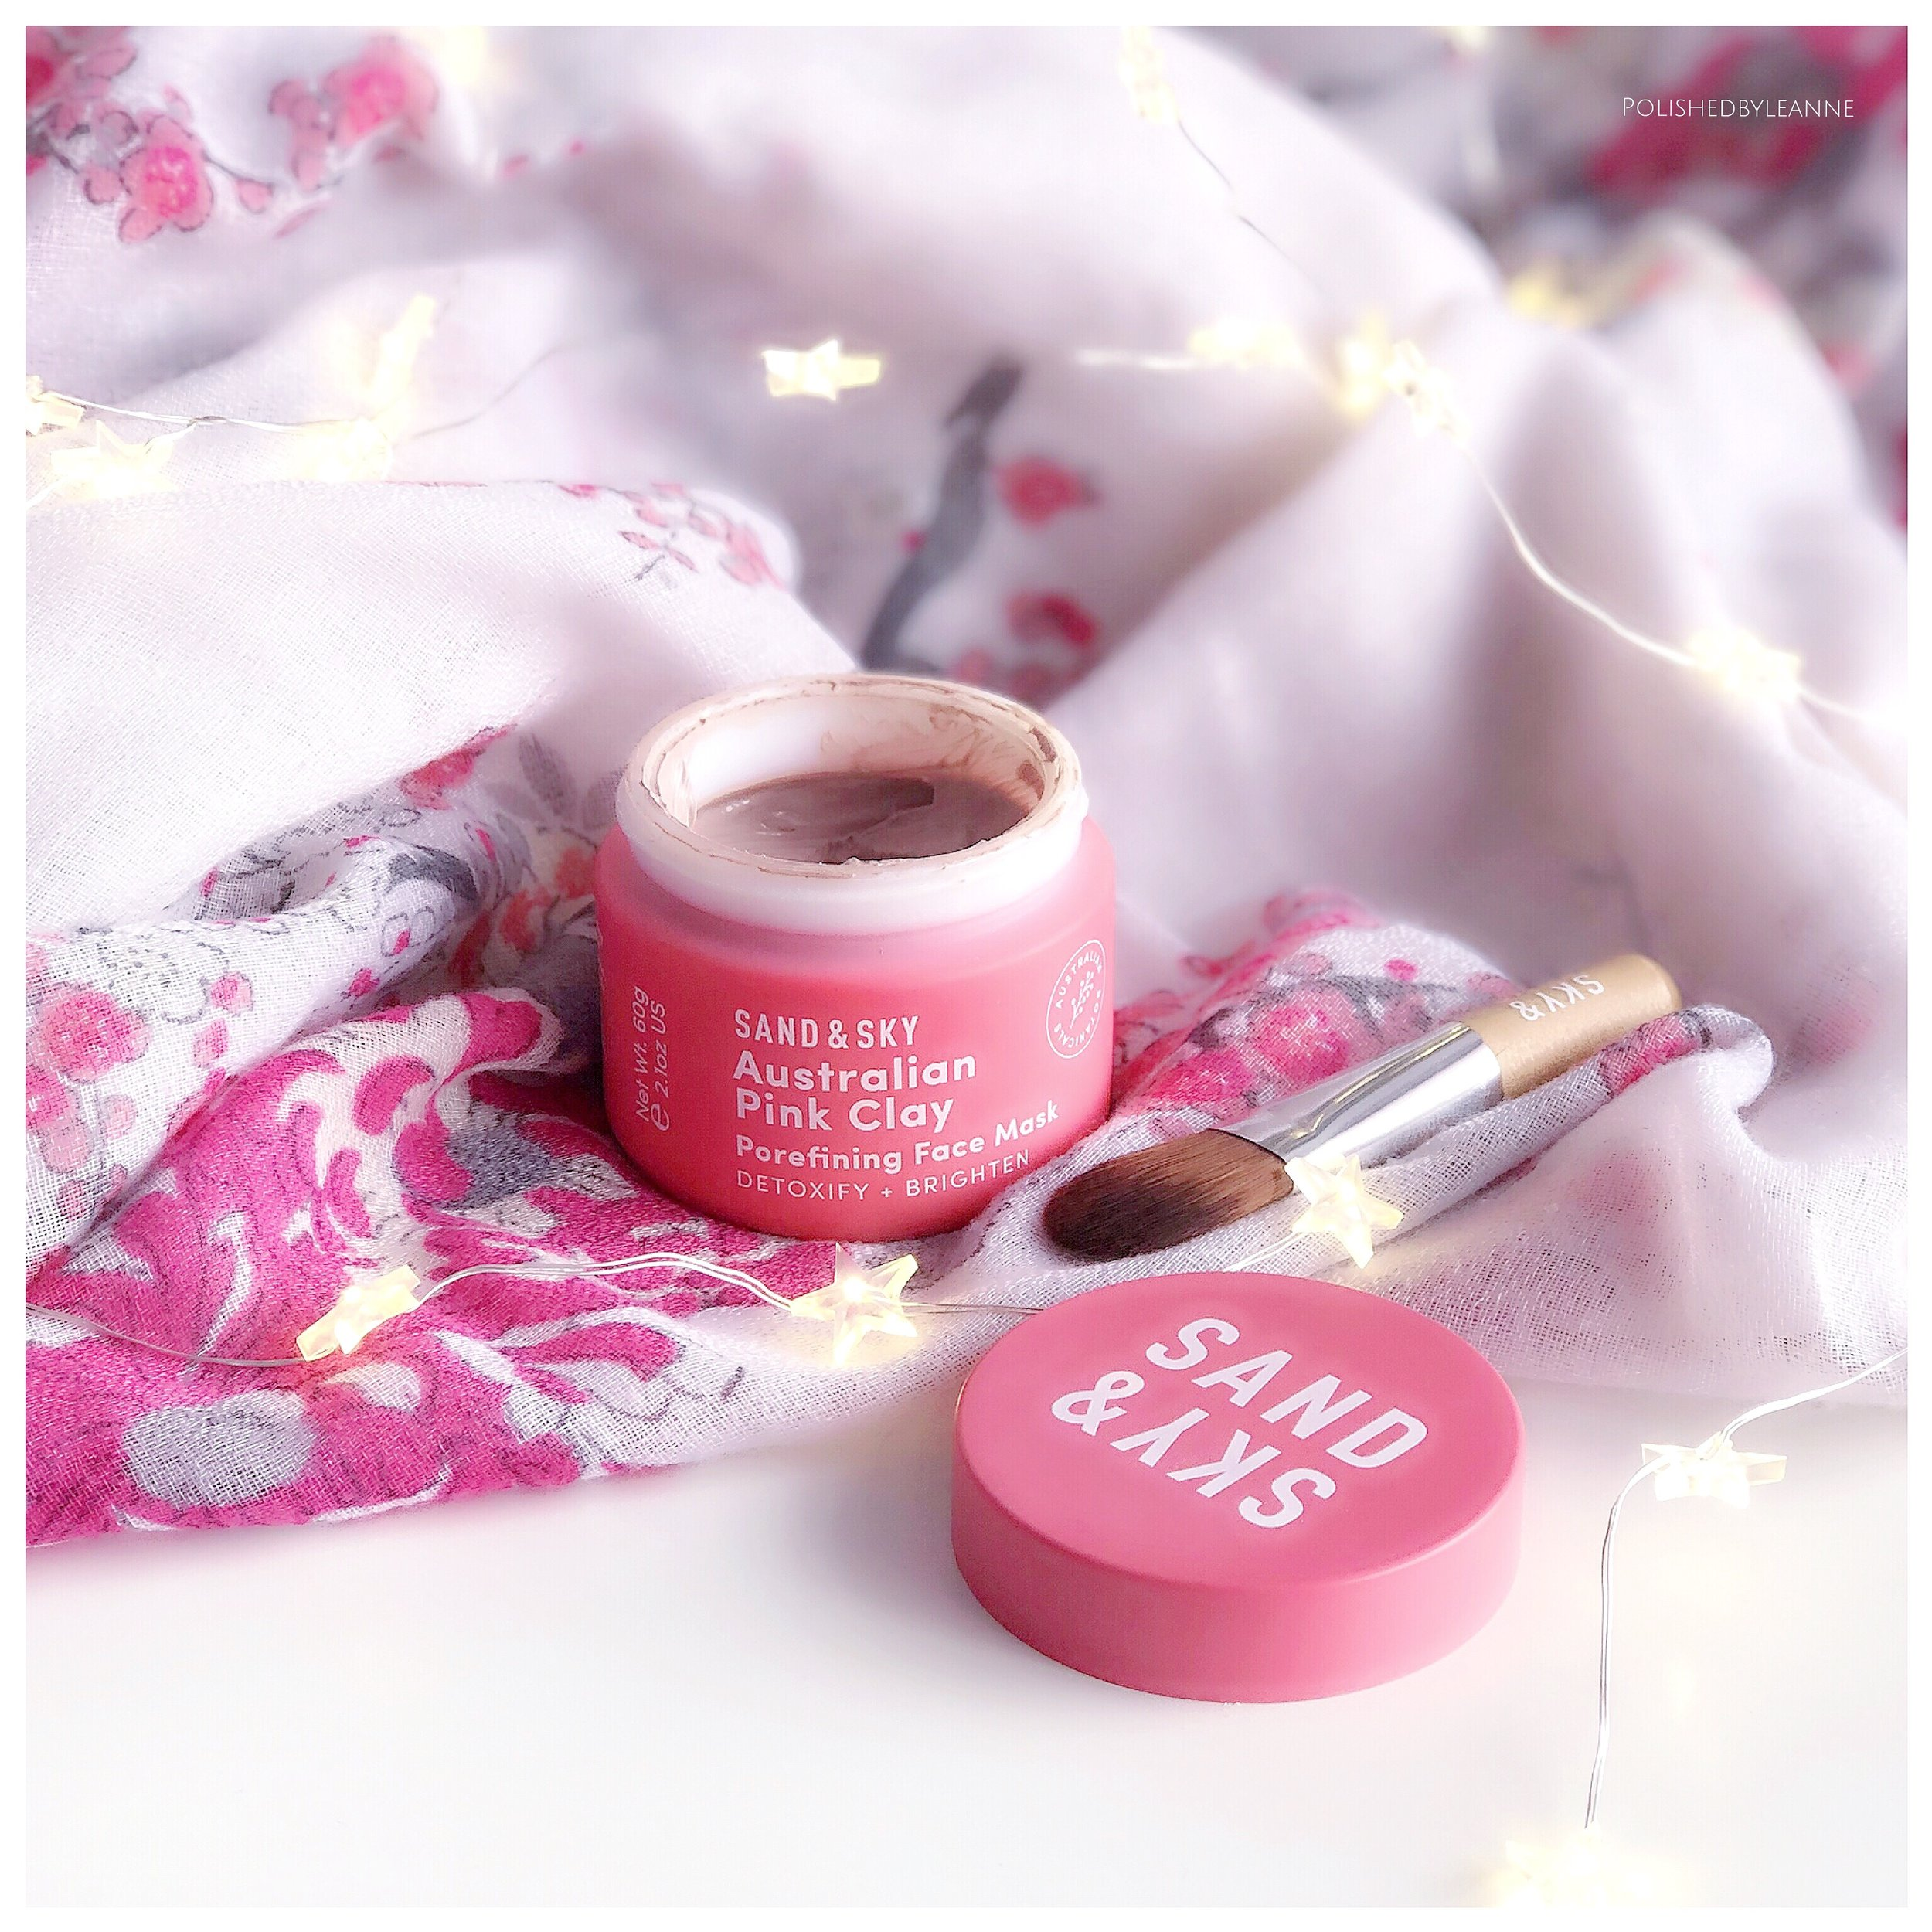 Does the Sand & Sky Pink Clay Mask Really Work? -